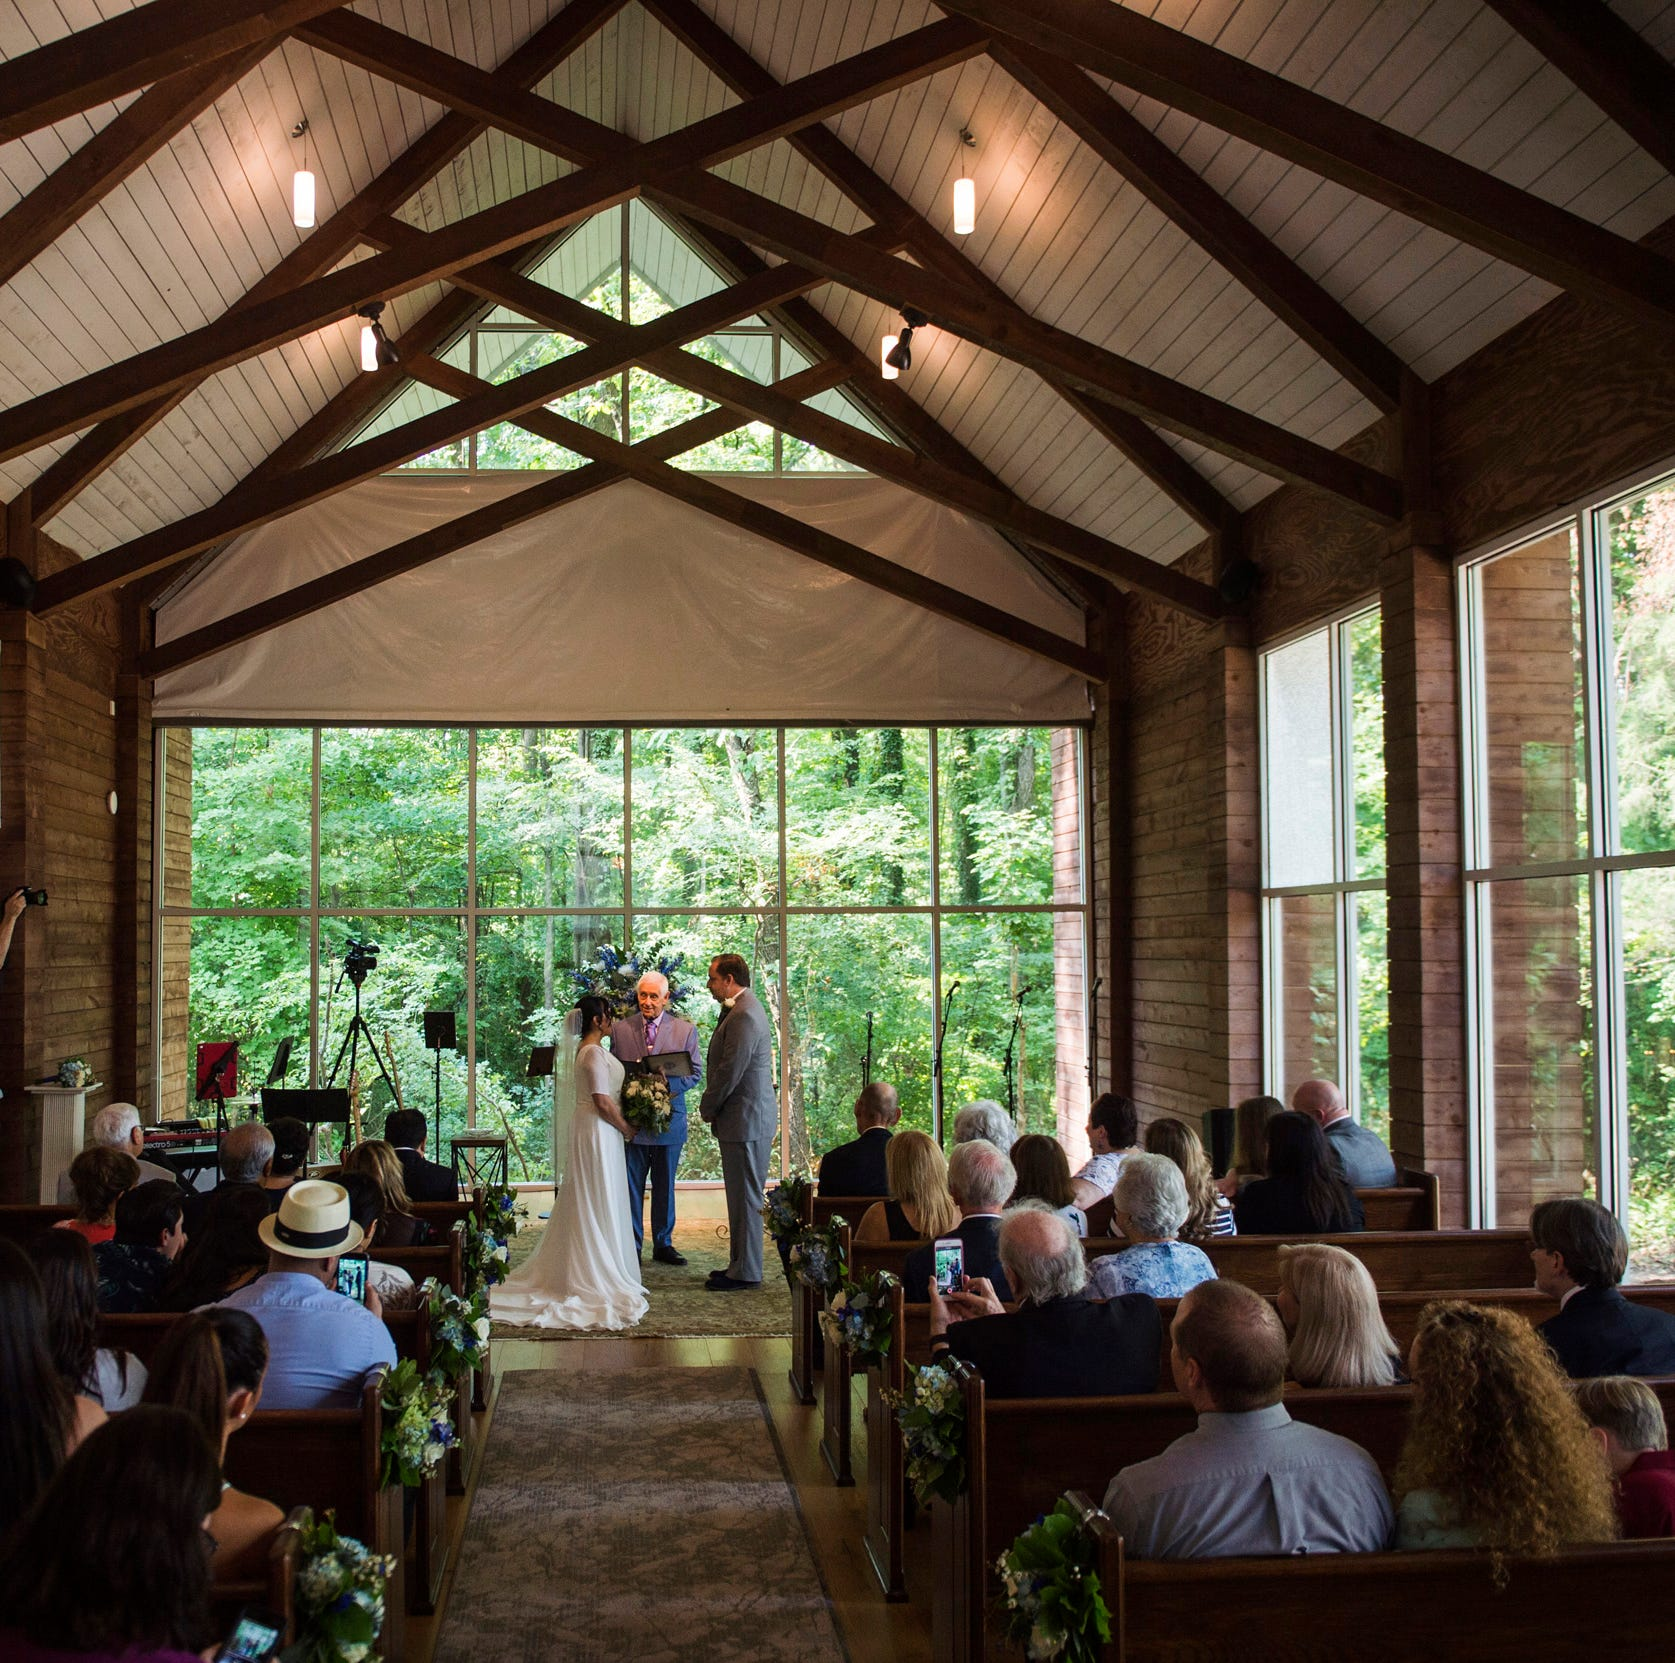 Elvis Week: Chapel in the Woods hosts first wedding